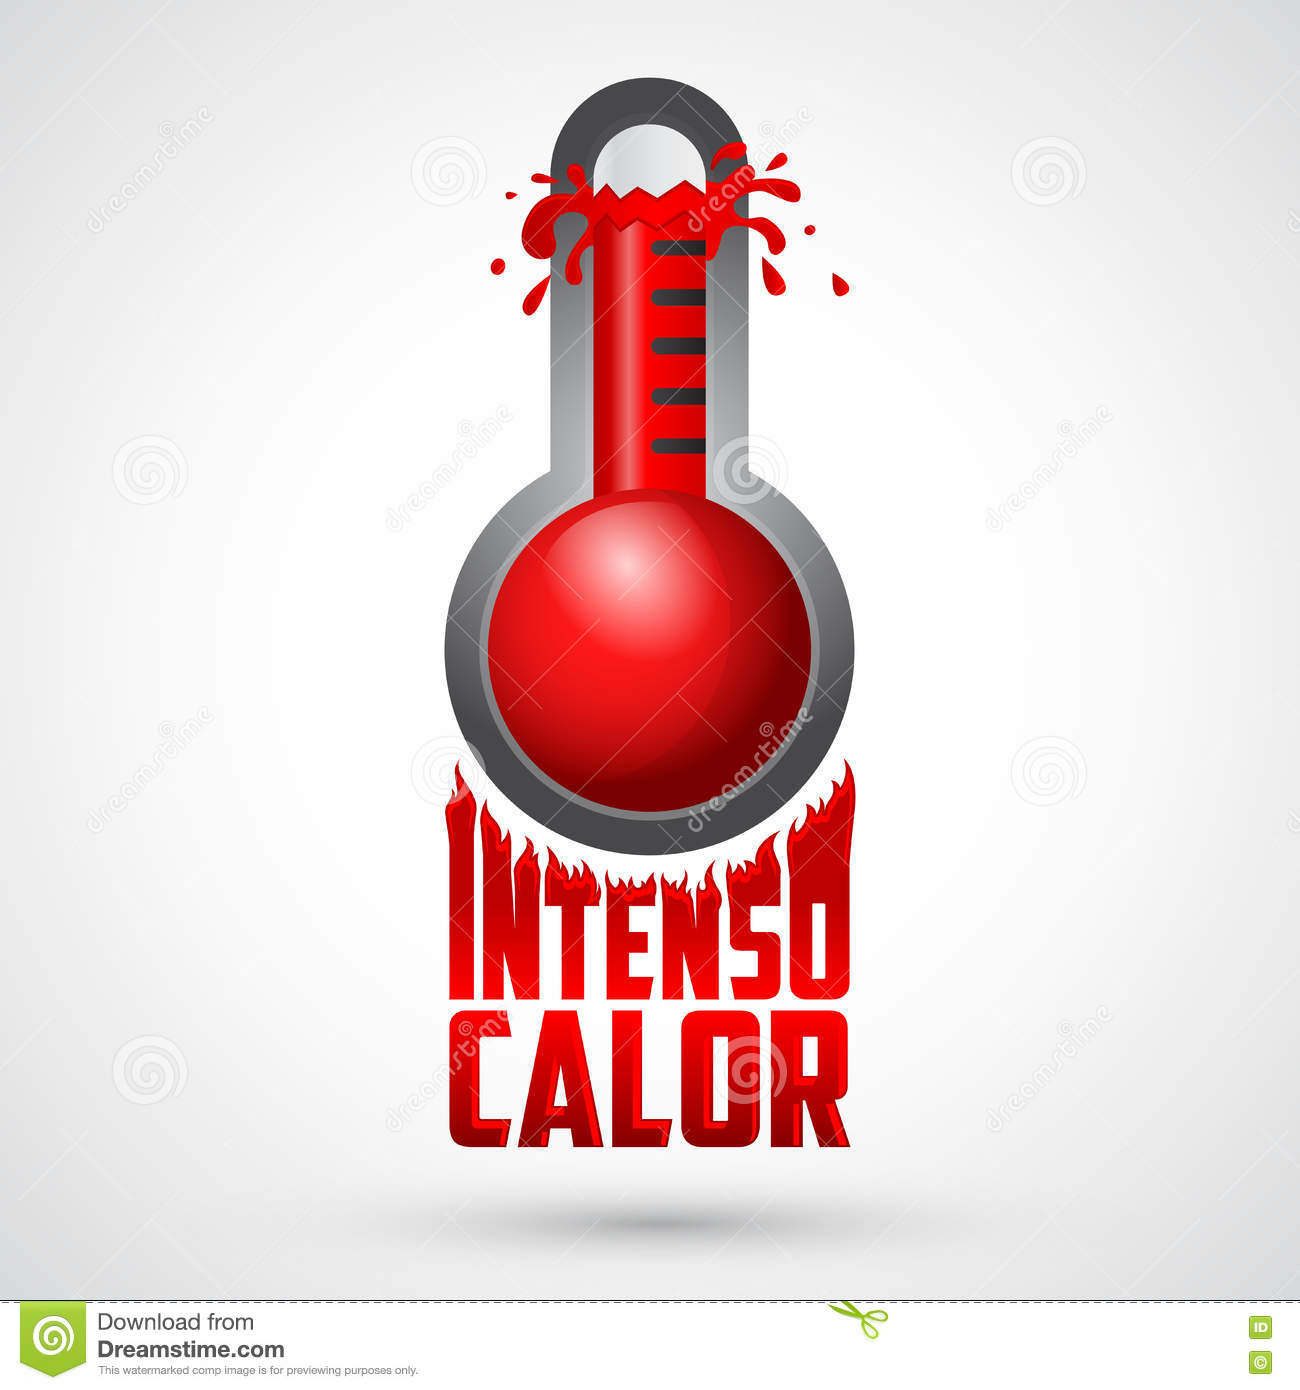 Intenso calor intense heat spanish text vector weather warning intenso calor intense heat spanish text vector weather warning sign buycottarizona Image collections